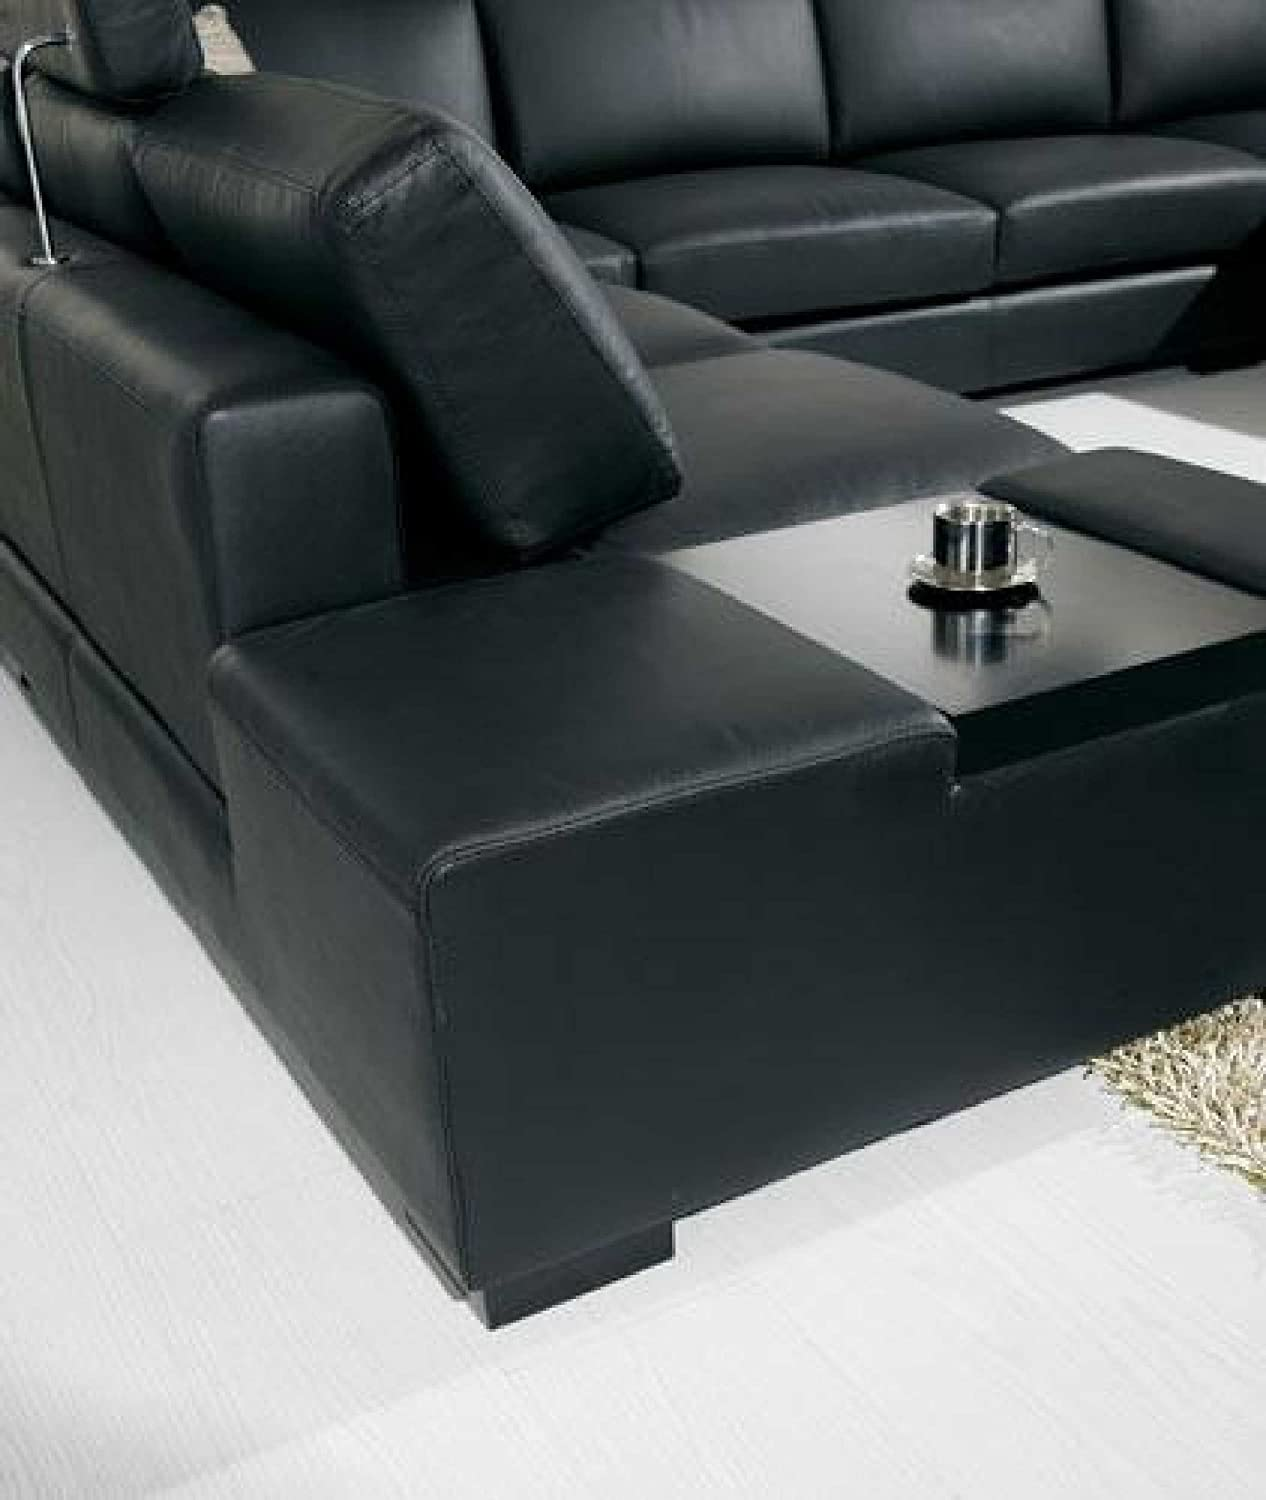 Amazon.com: T35   Black Bonded Leather Sectional Sofa With Headrests:  Kitchen U0026 Dining